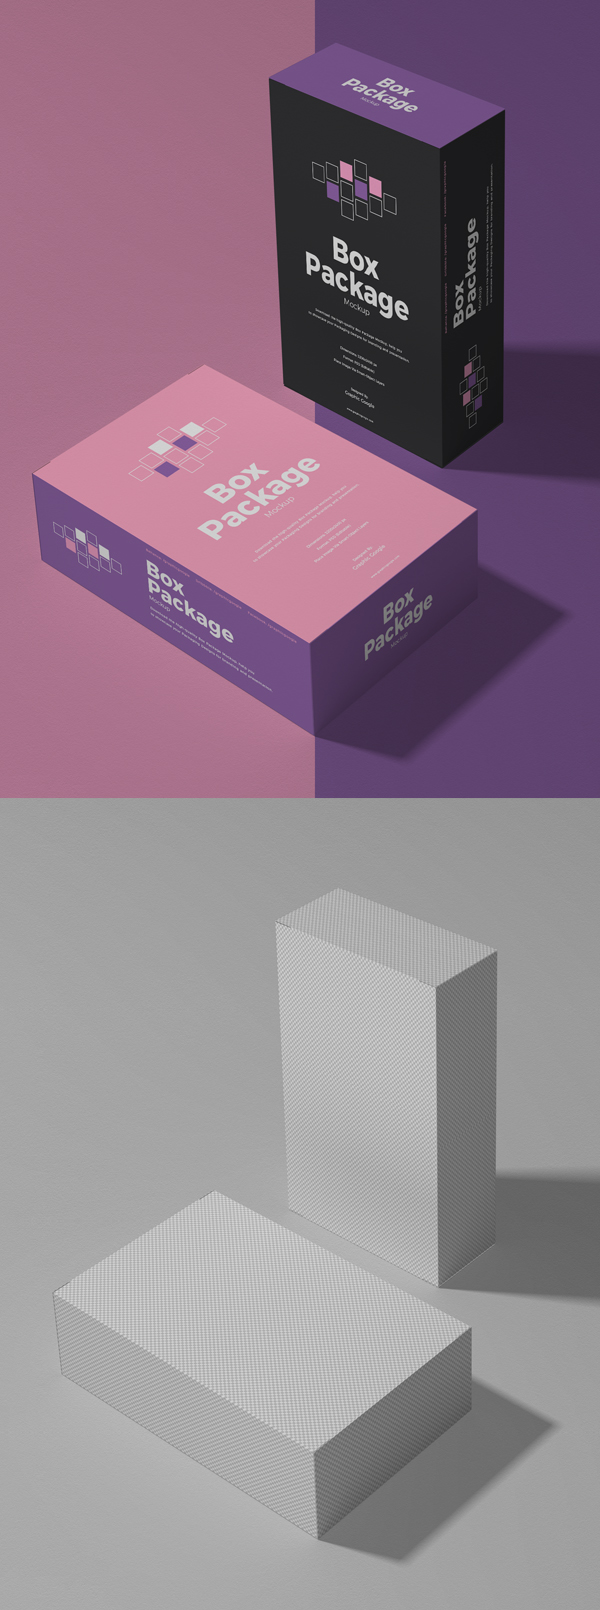 Free packaging box PSD mockup